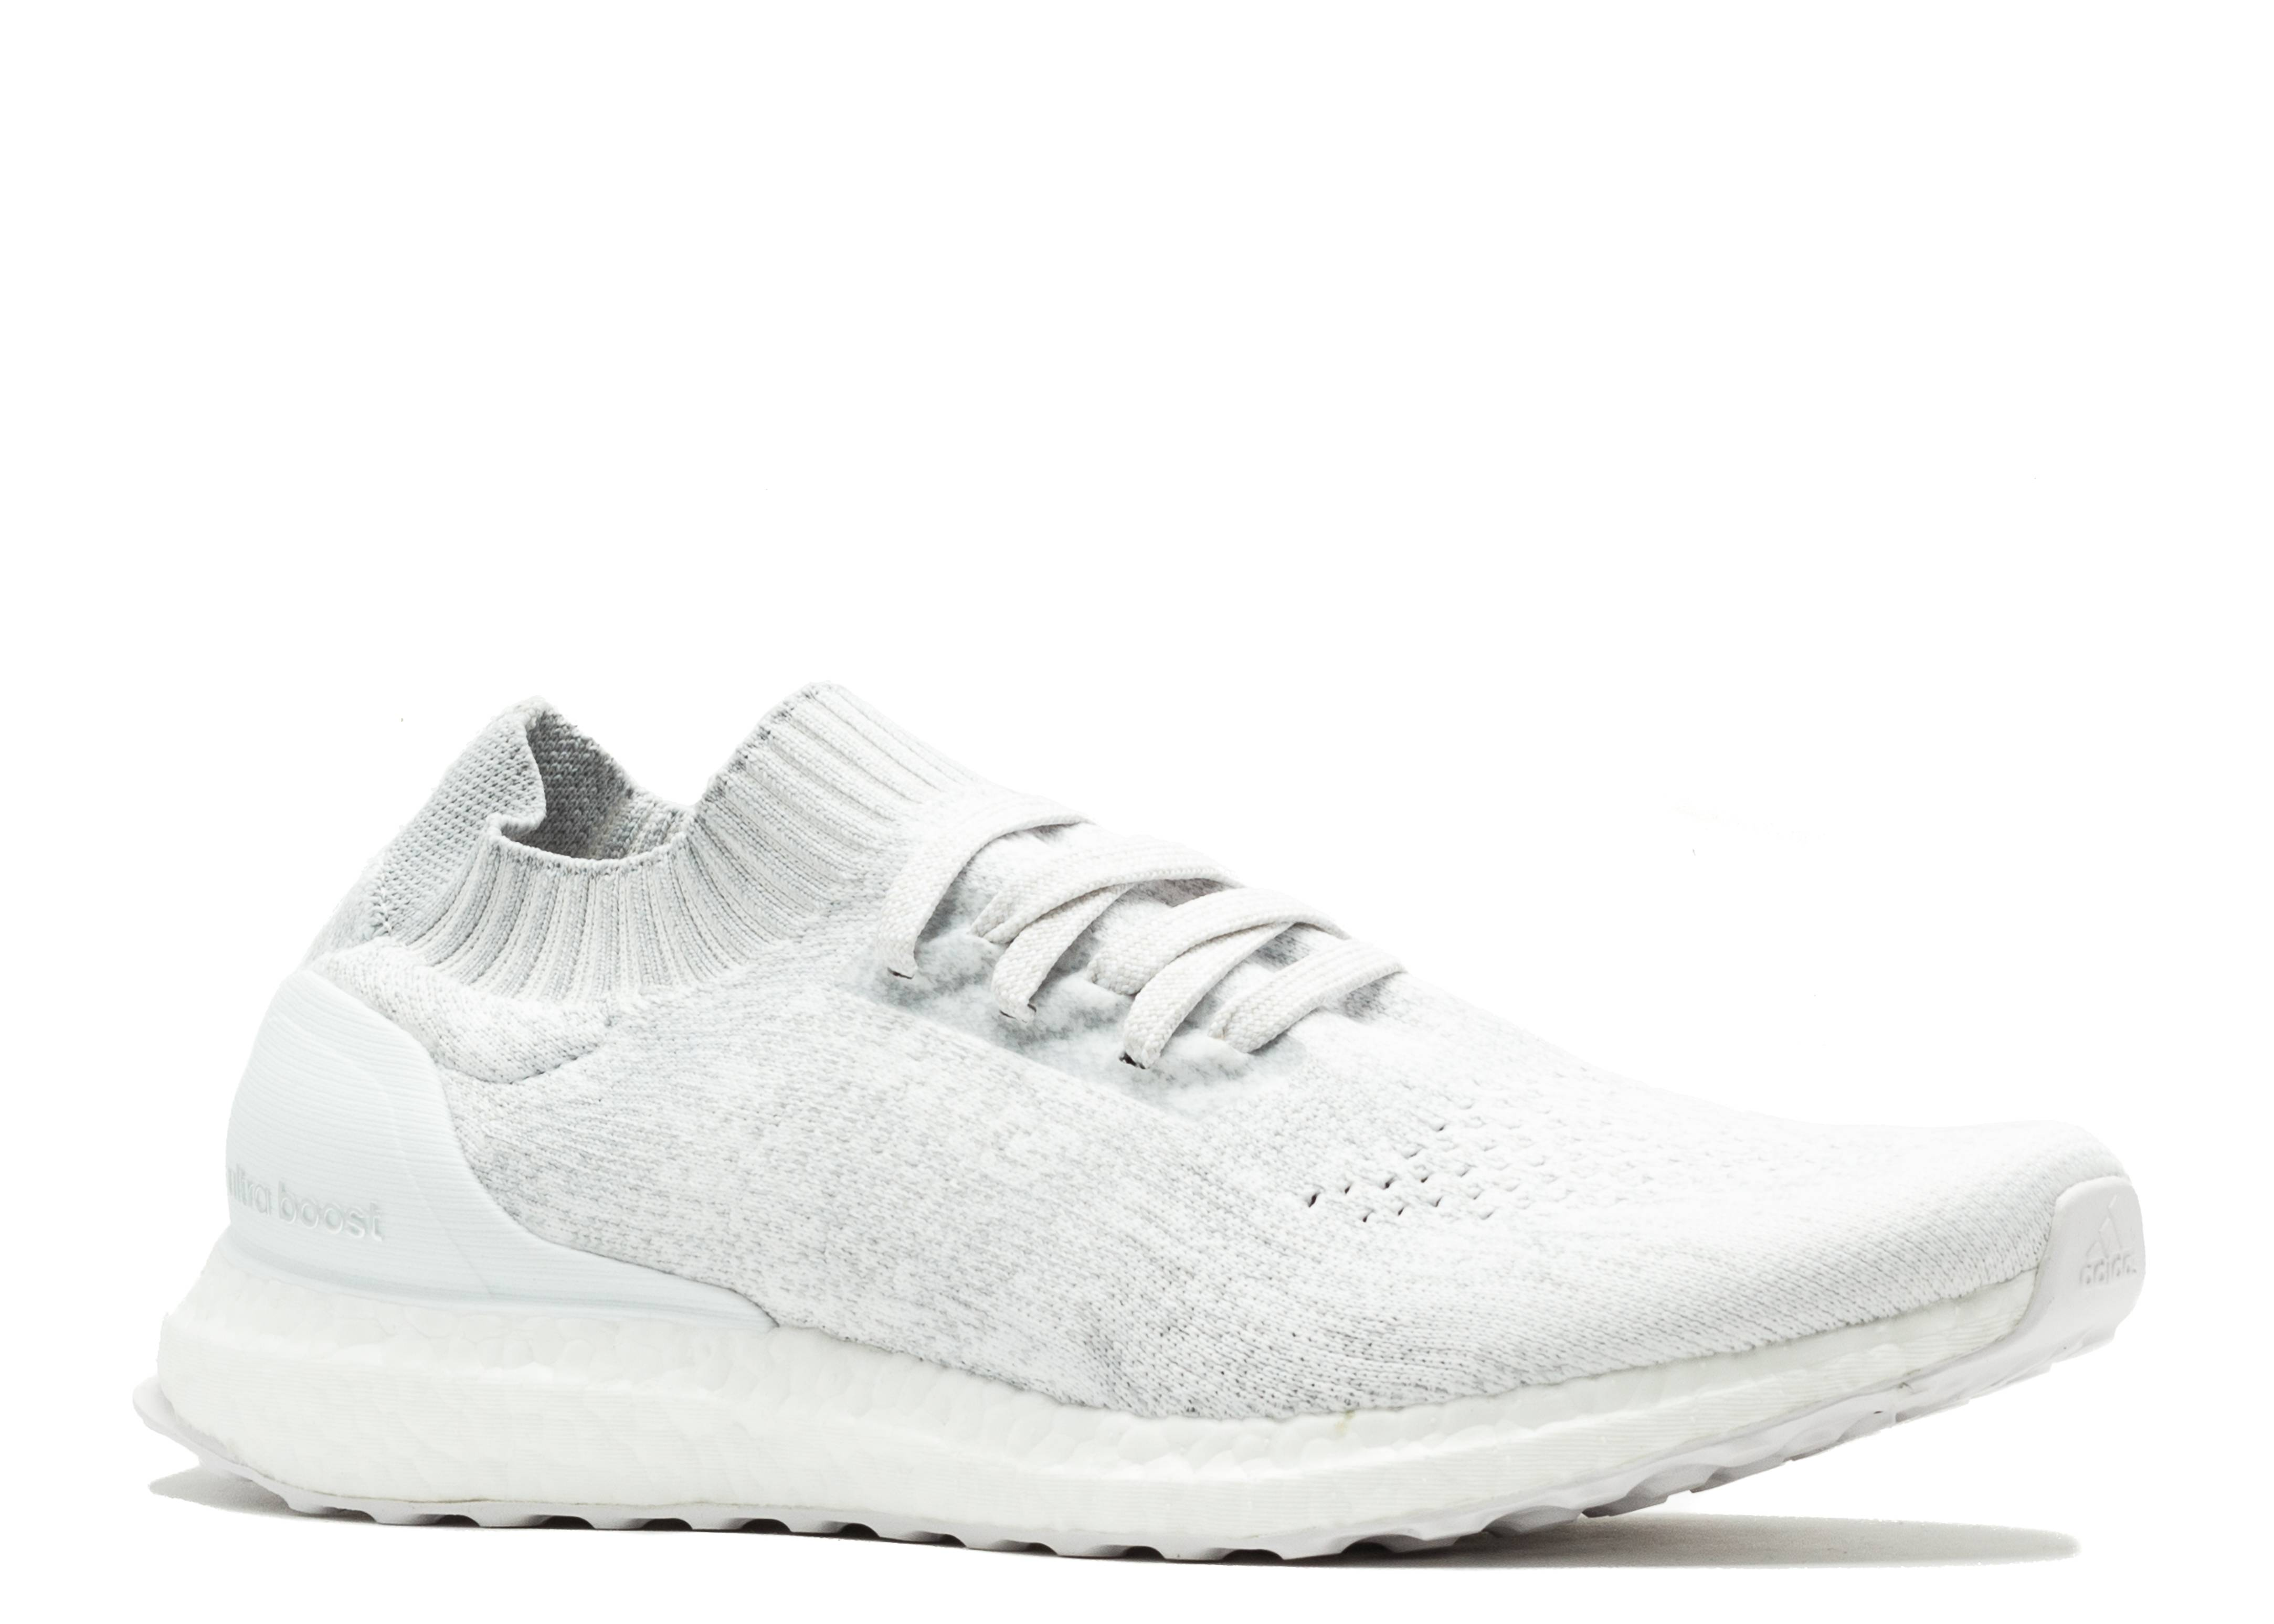 Adidas Ultra Boost Uncaged LTD Triple White BY2549